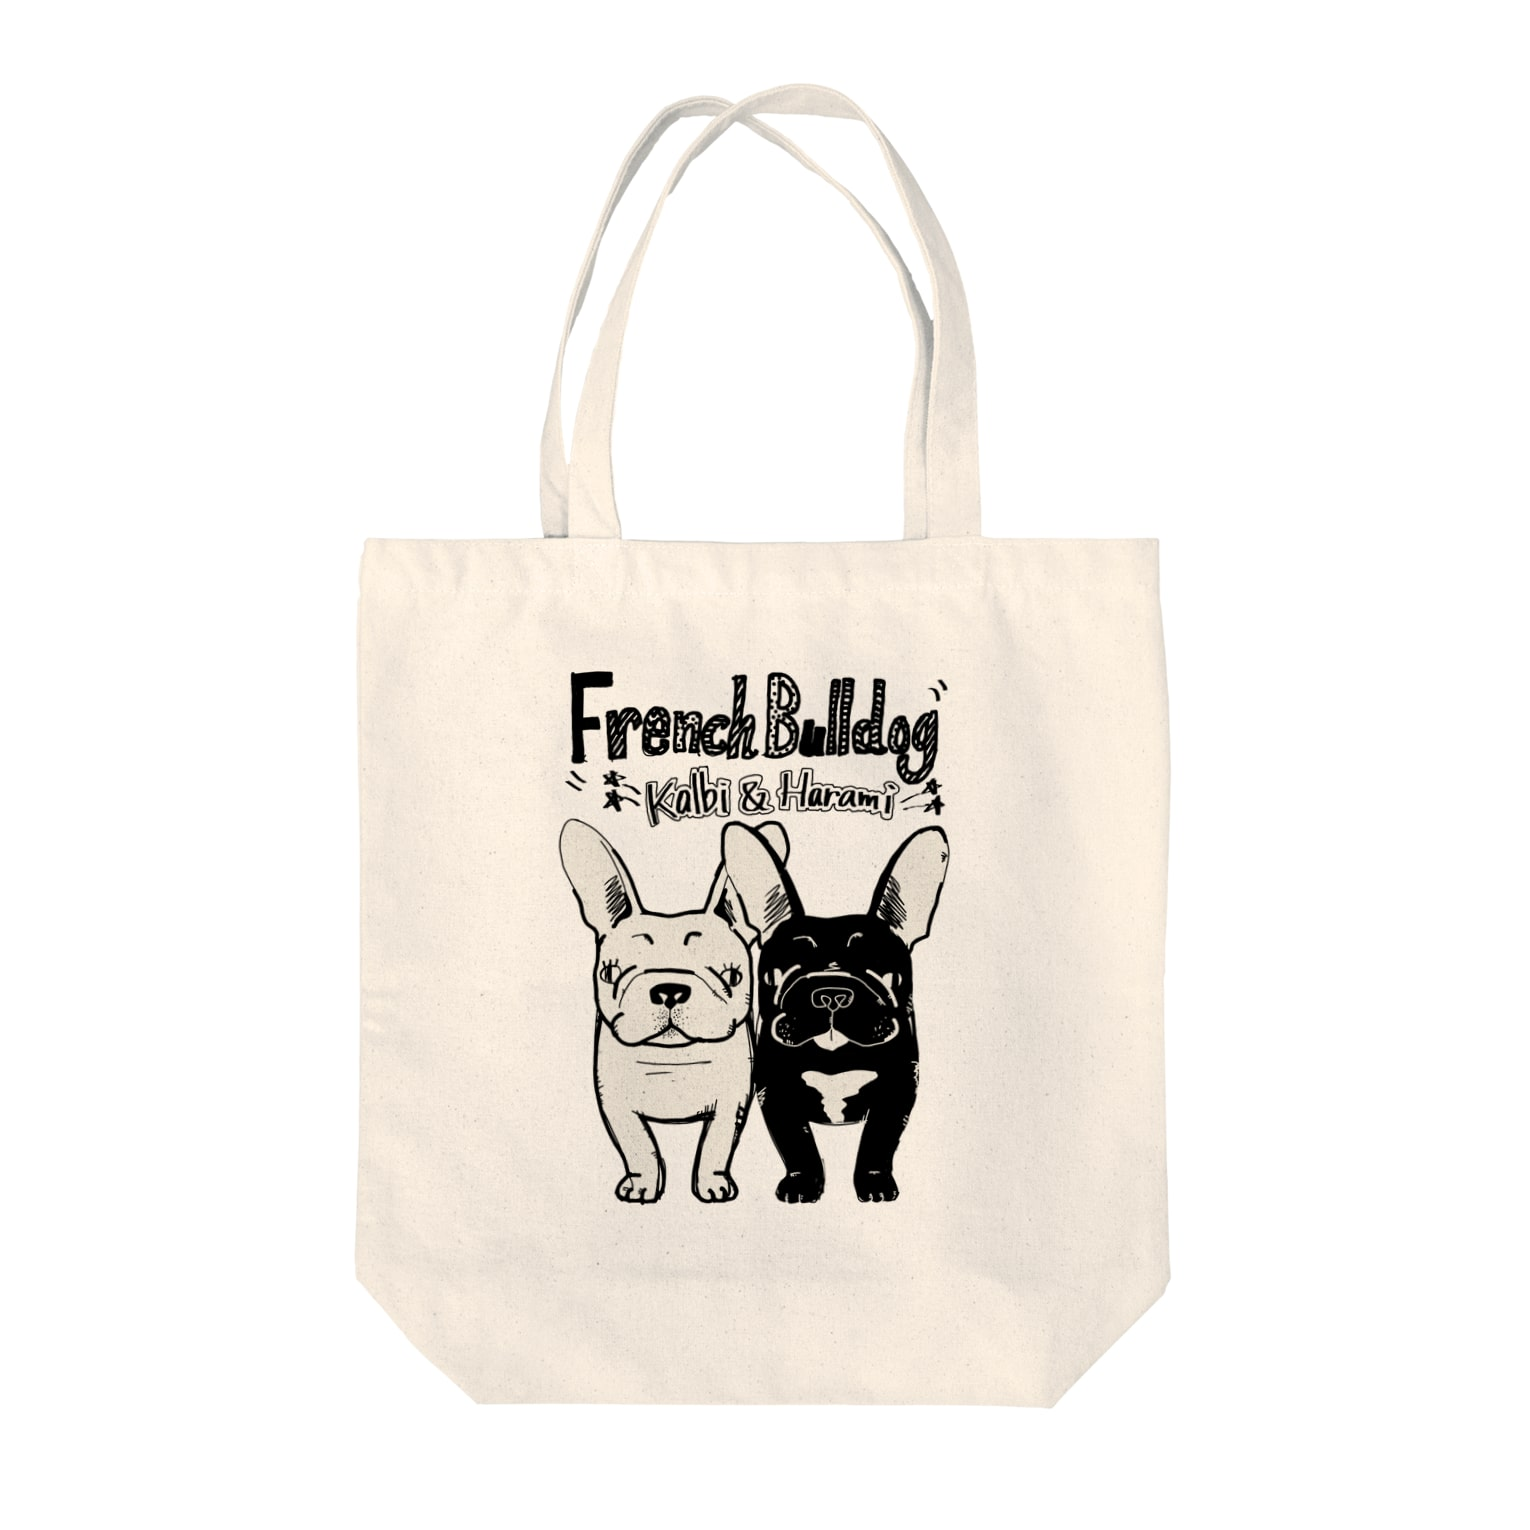 androgyneの◆M.N様専用商品ページ◆ Tote bags